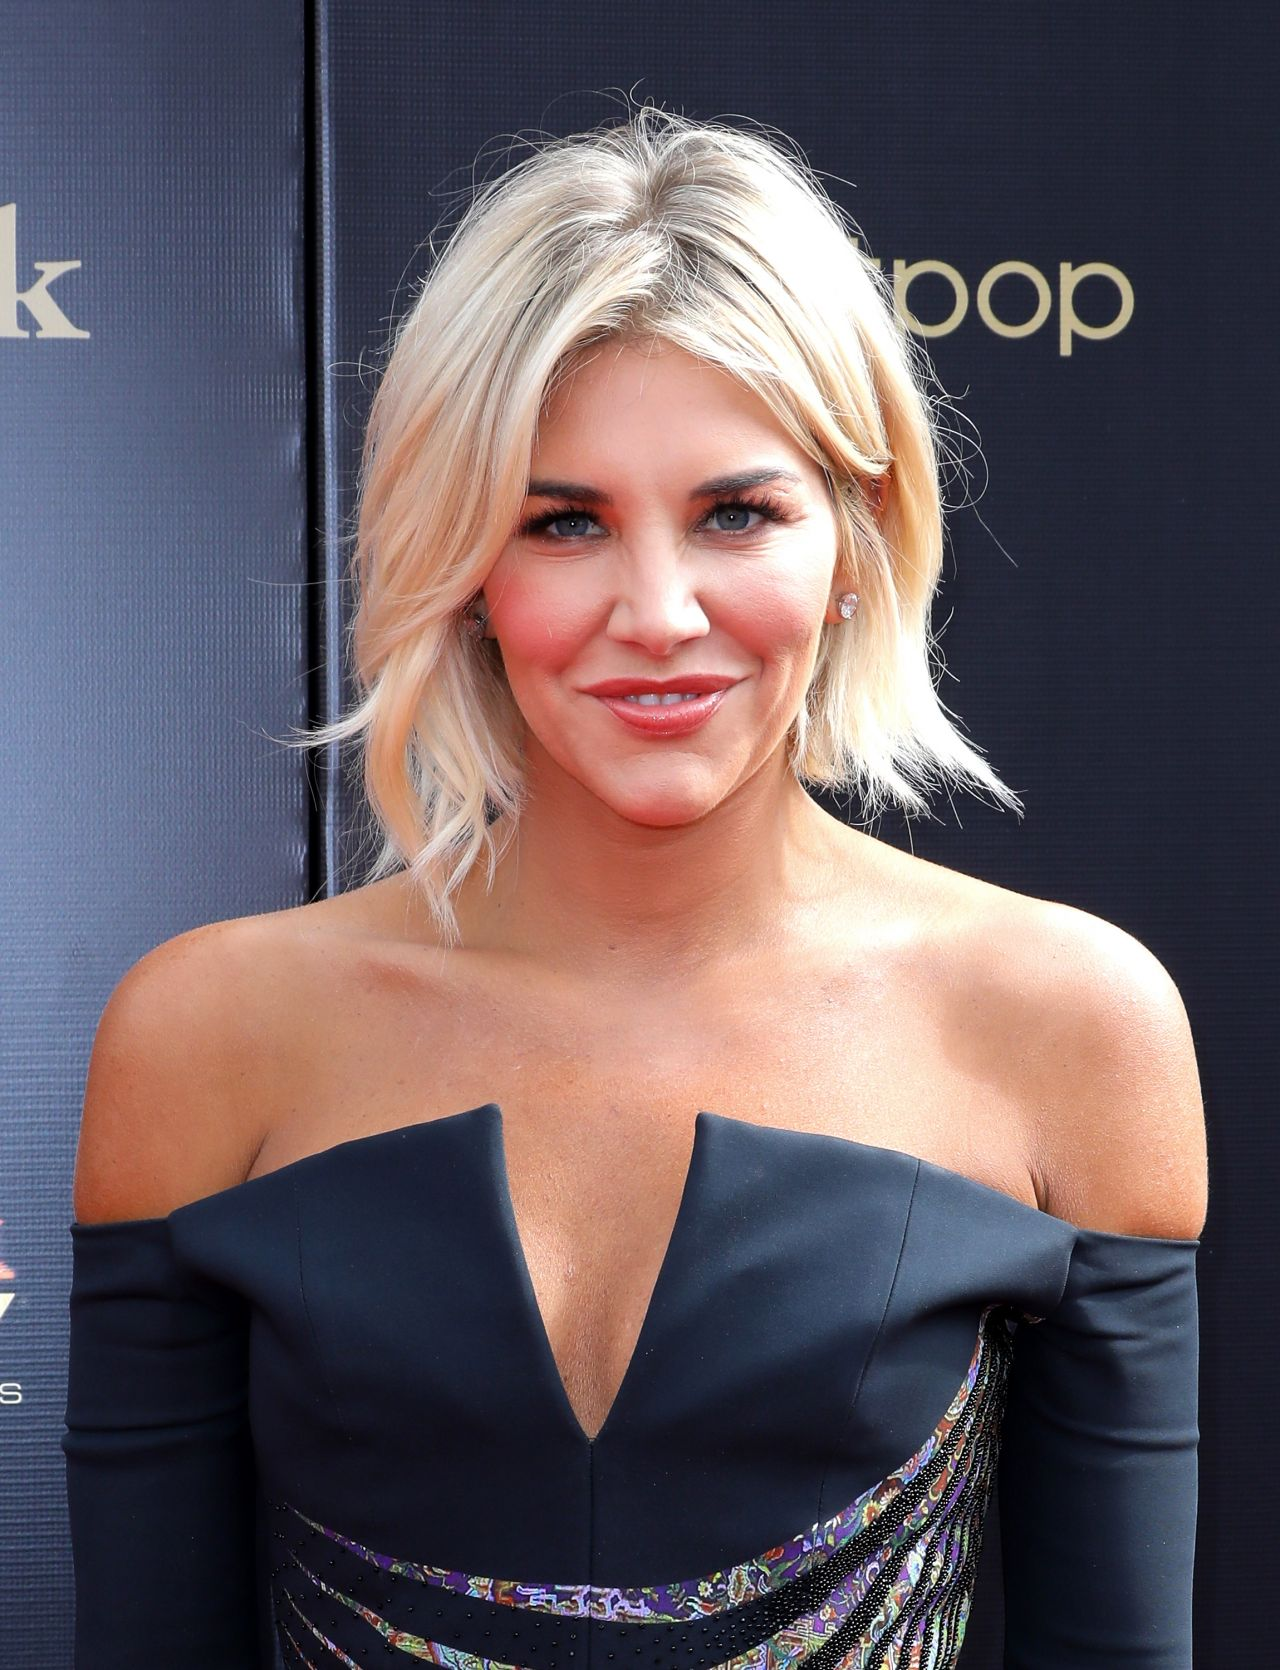 30 Photos Of Charissa Thompson Swanty Gallery